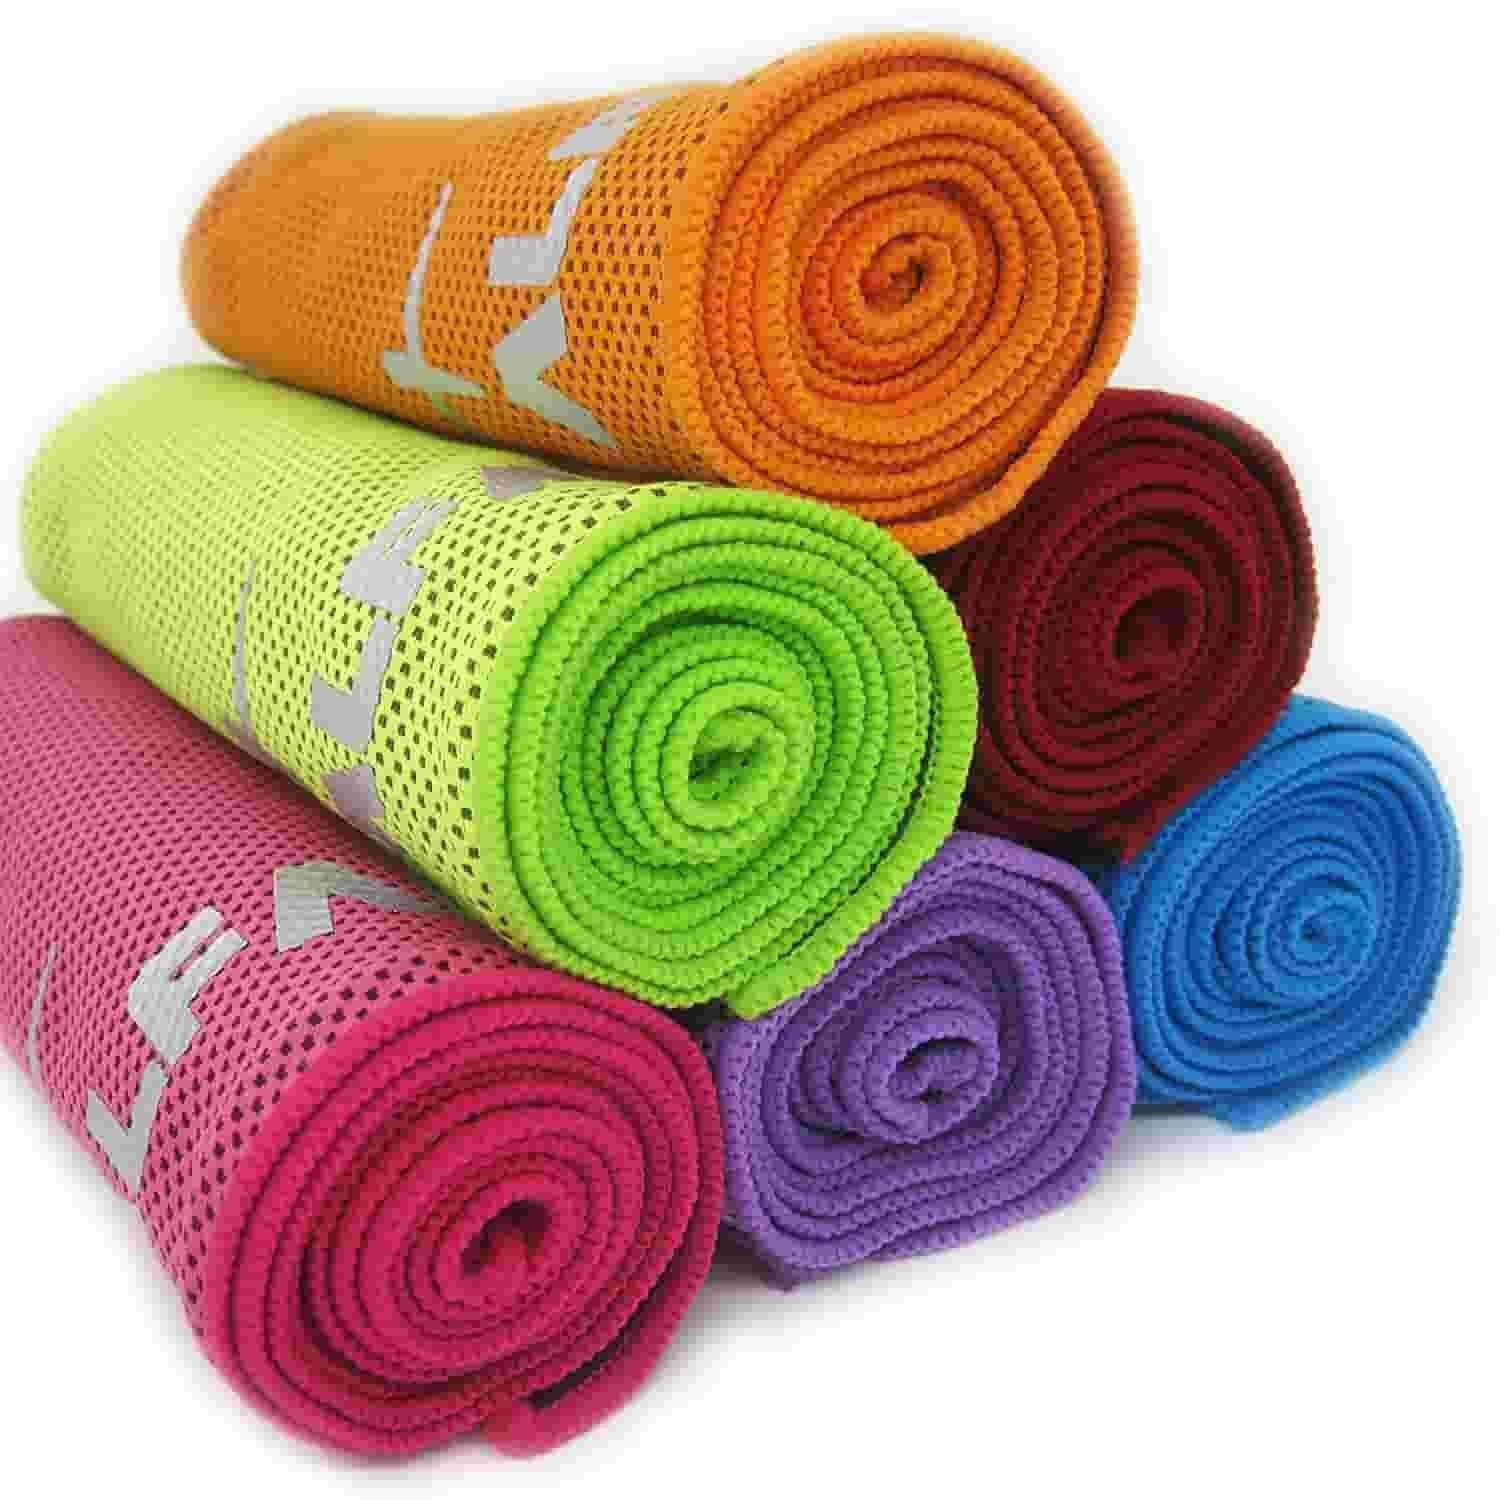 Cooling towel for yoga